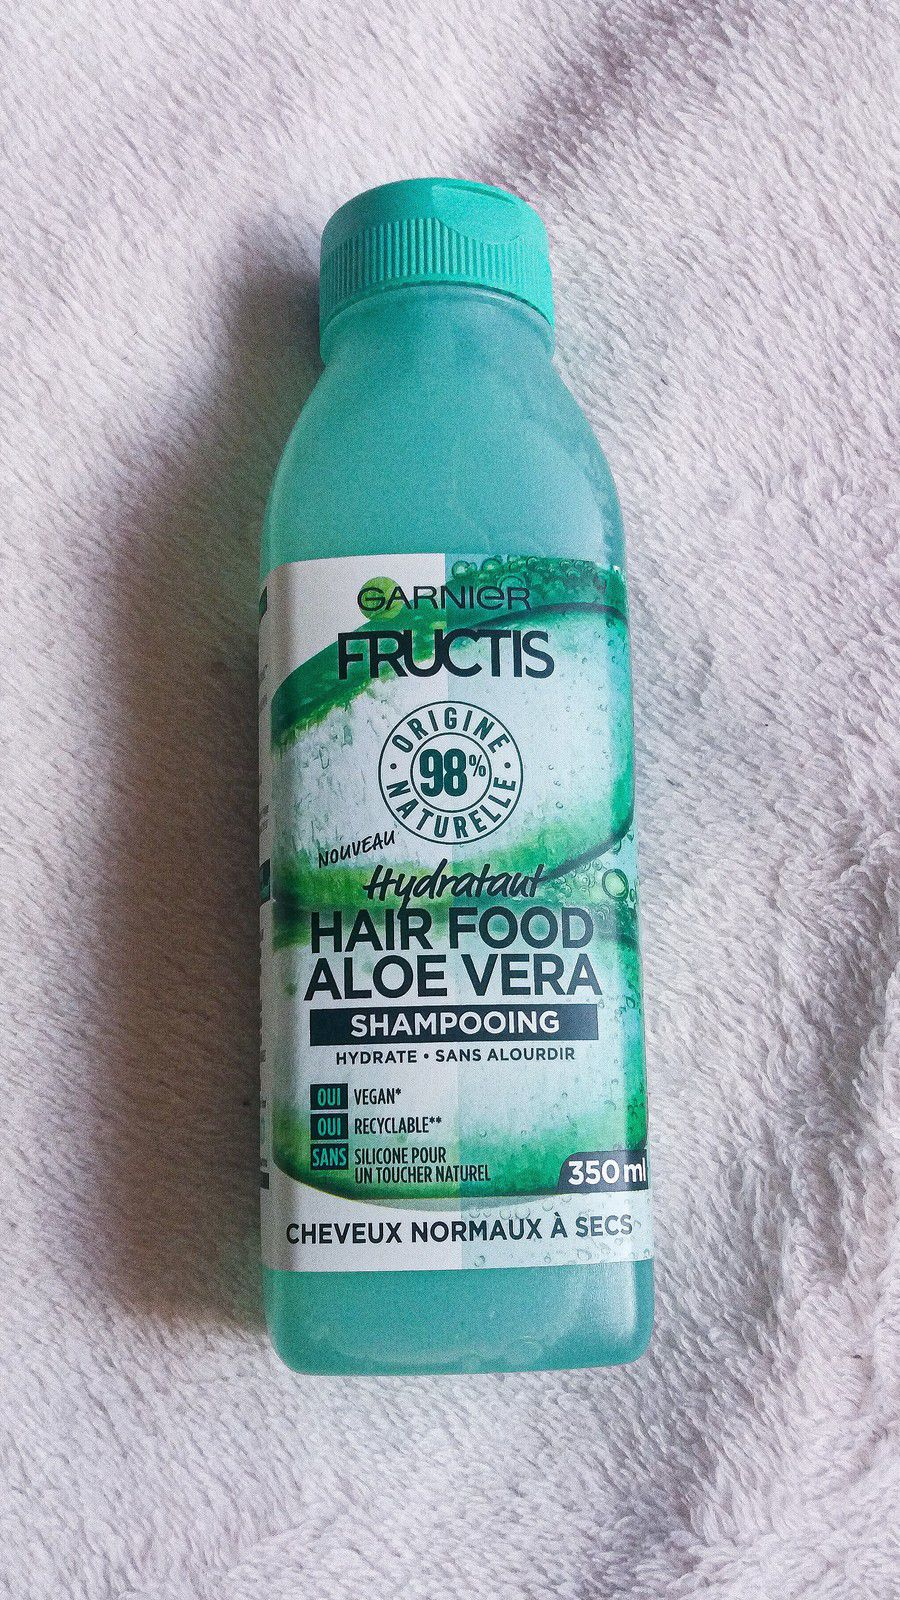 Garnier, Fructis, Hair Food, Aloe Vera